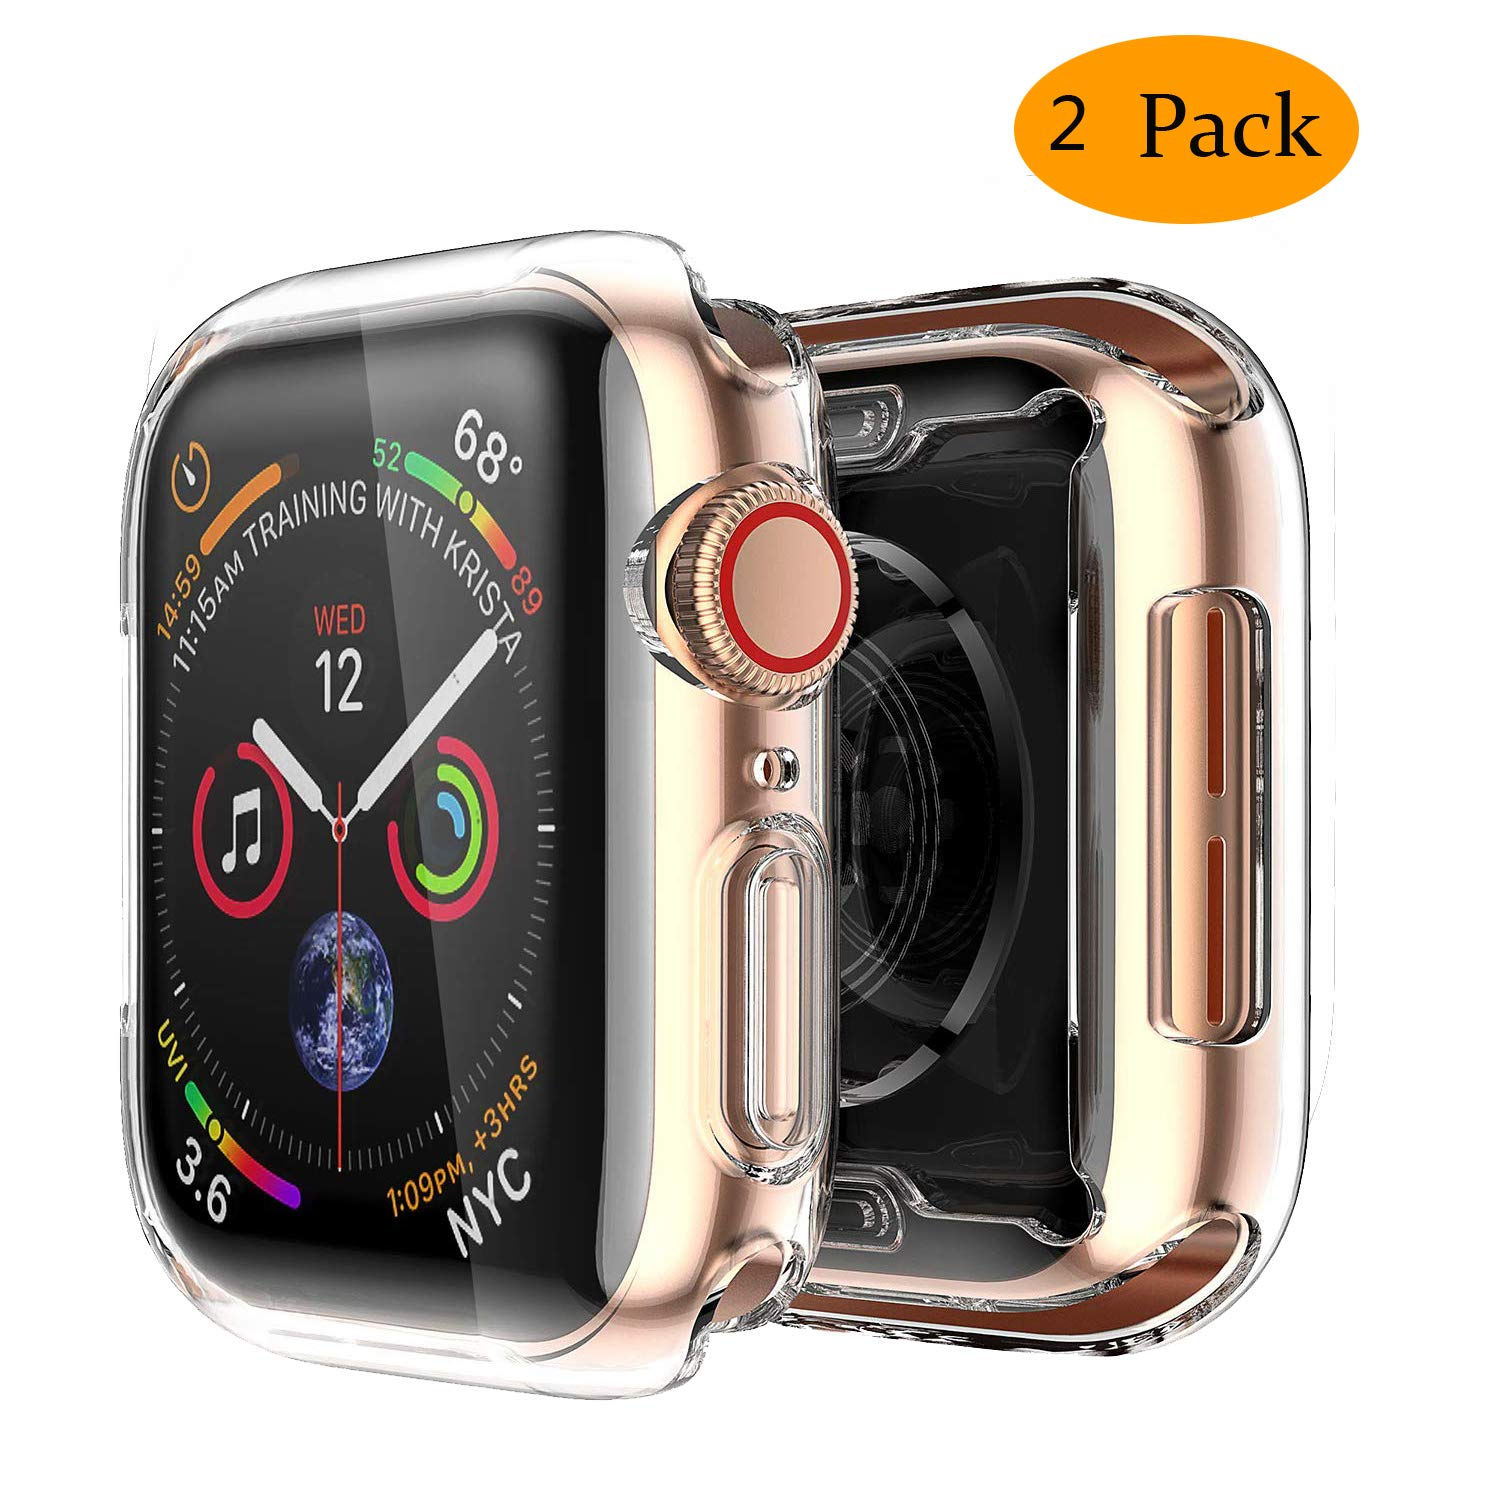 Smiling Apple Watch 4 - Carcasa Transparente con Protector ...